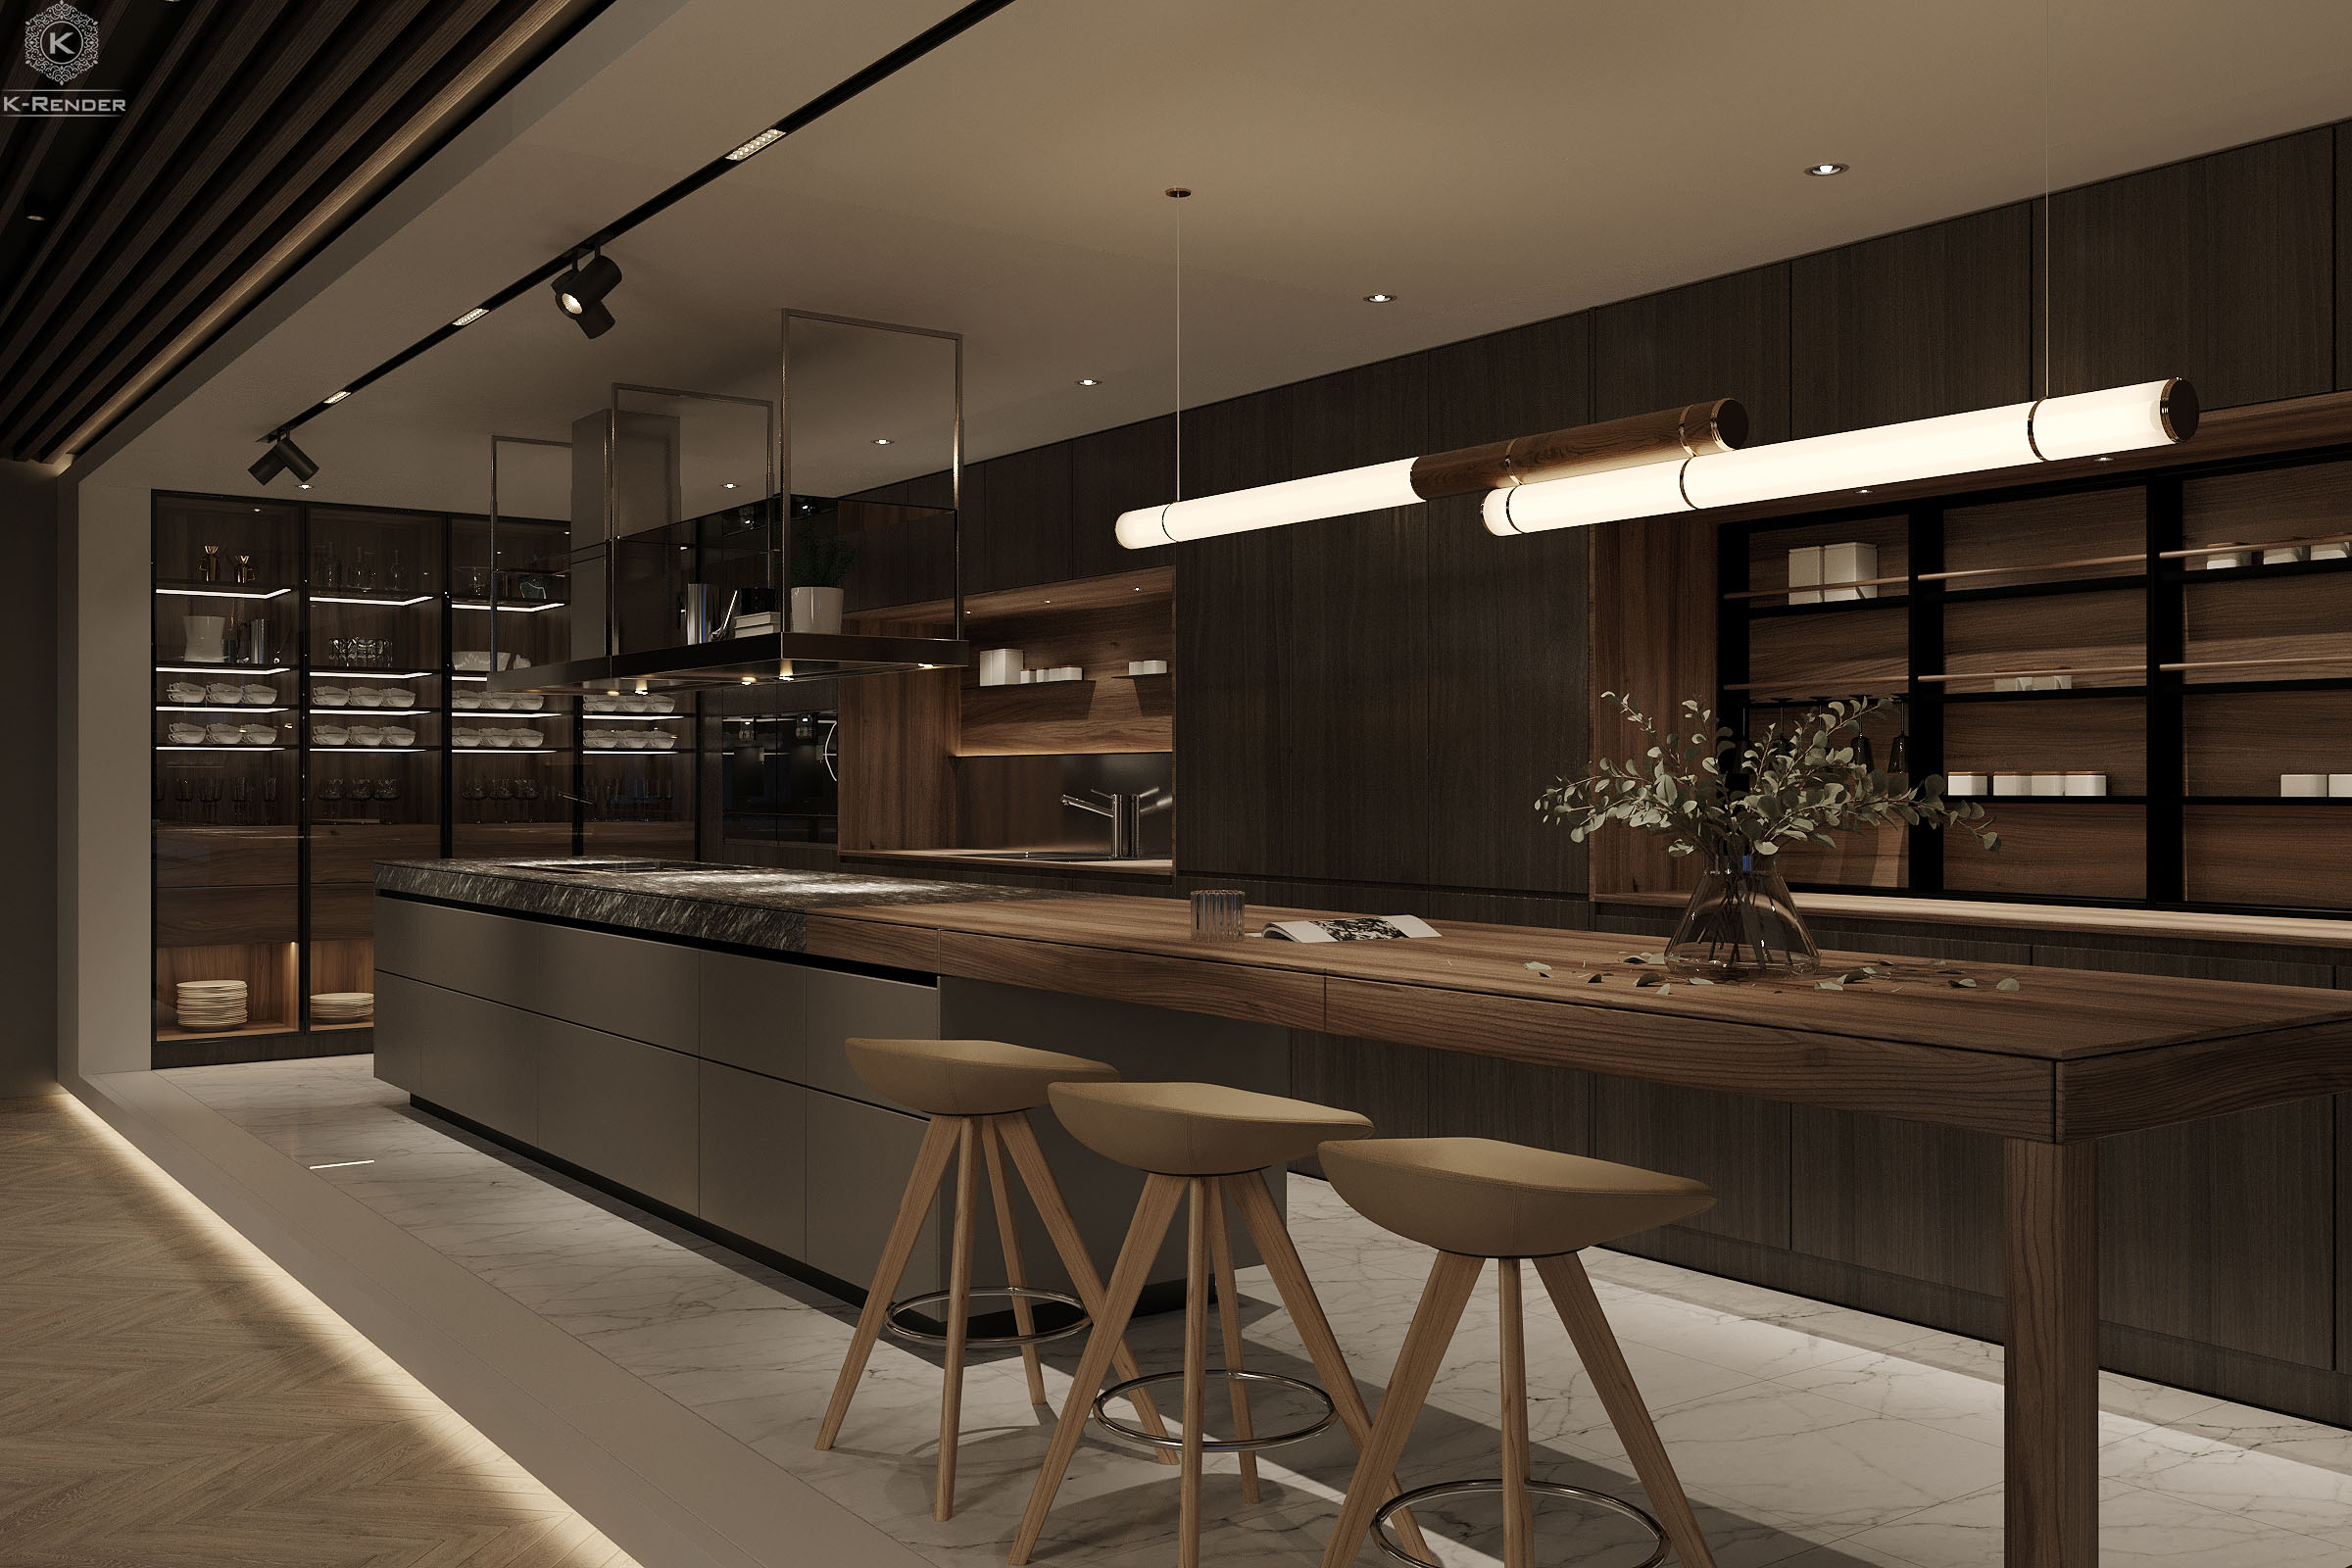 Interior-kitchen-was-rendered-by-K-Render-Studio-the-architectural-rendering-company